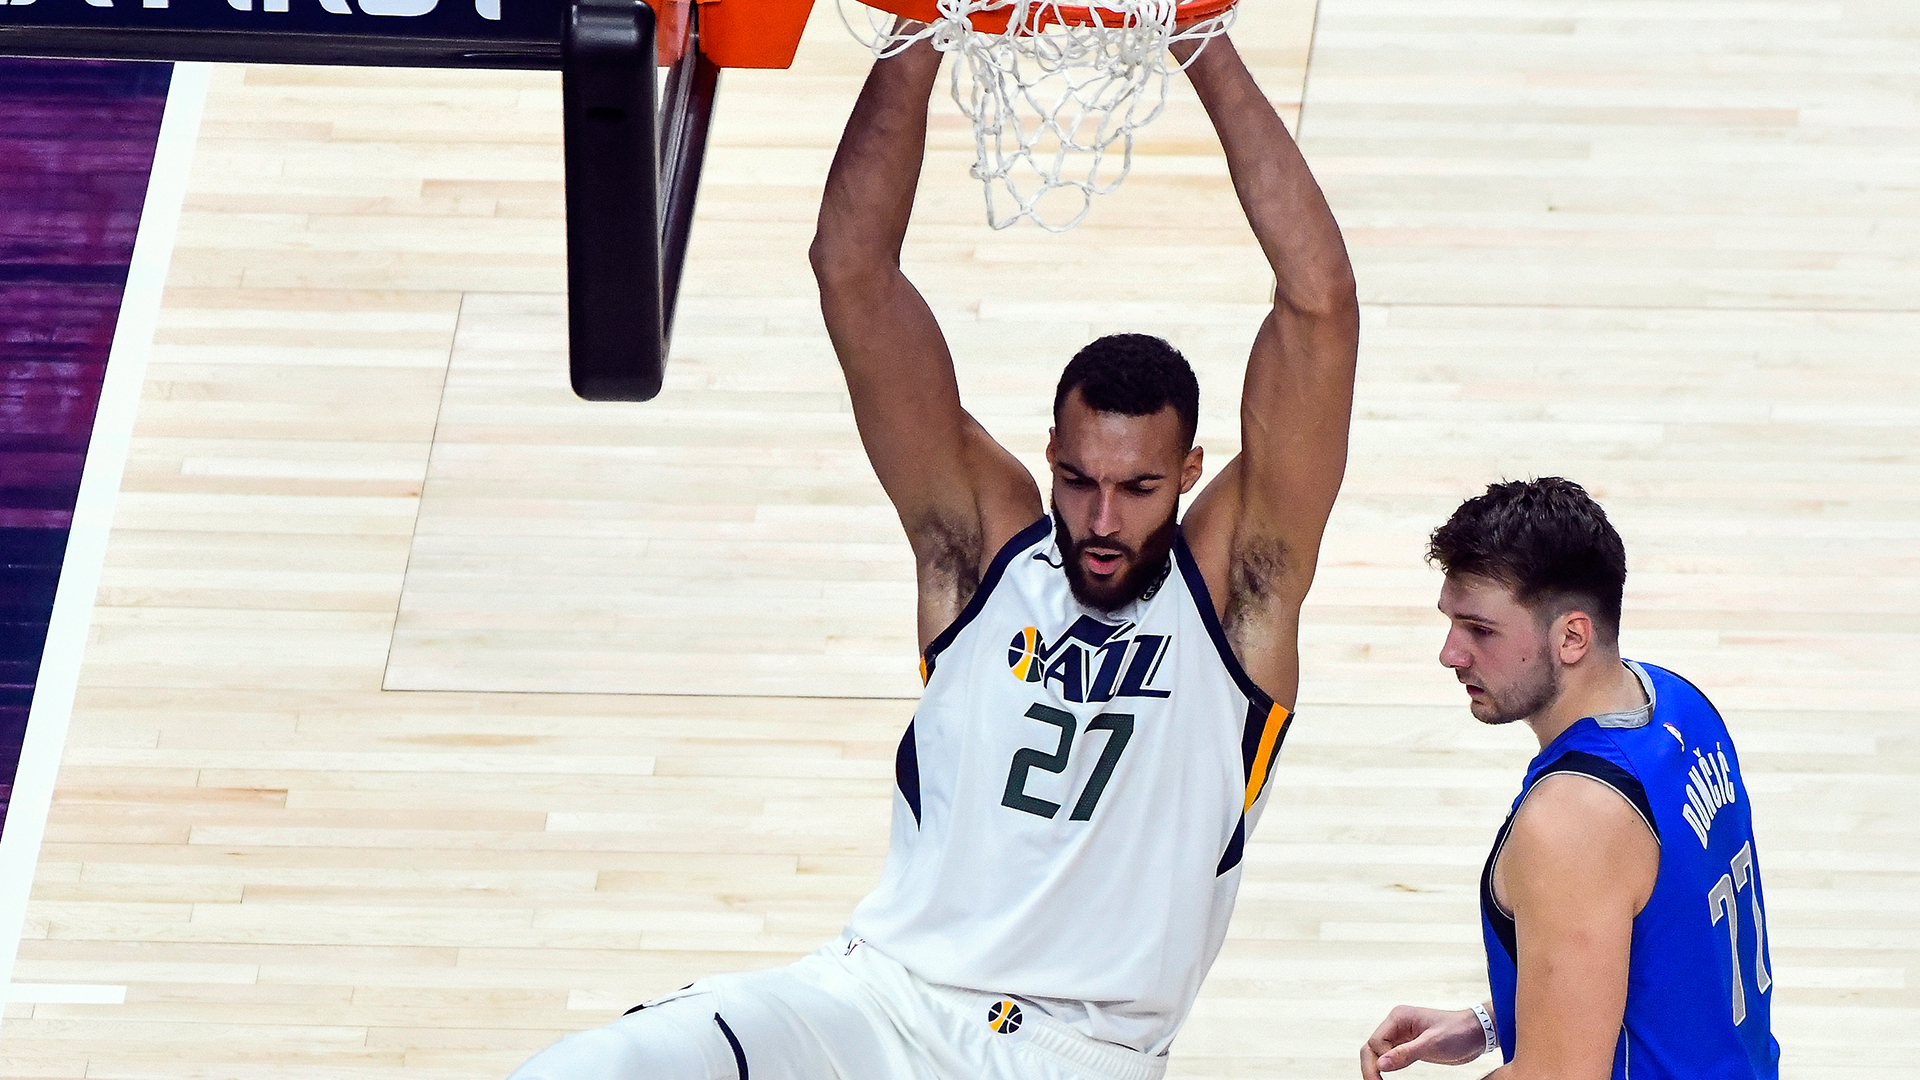 'Different vibe' to Jazz as their win streak reaches 10